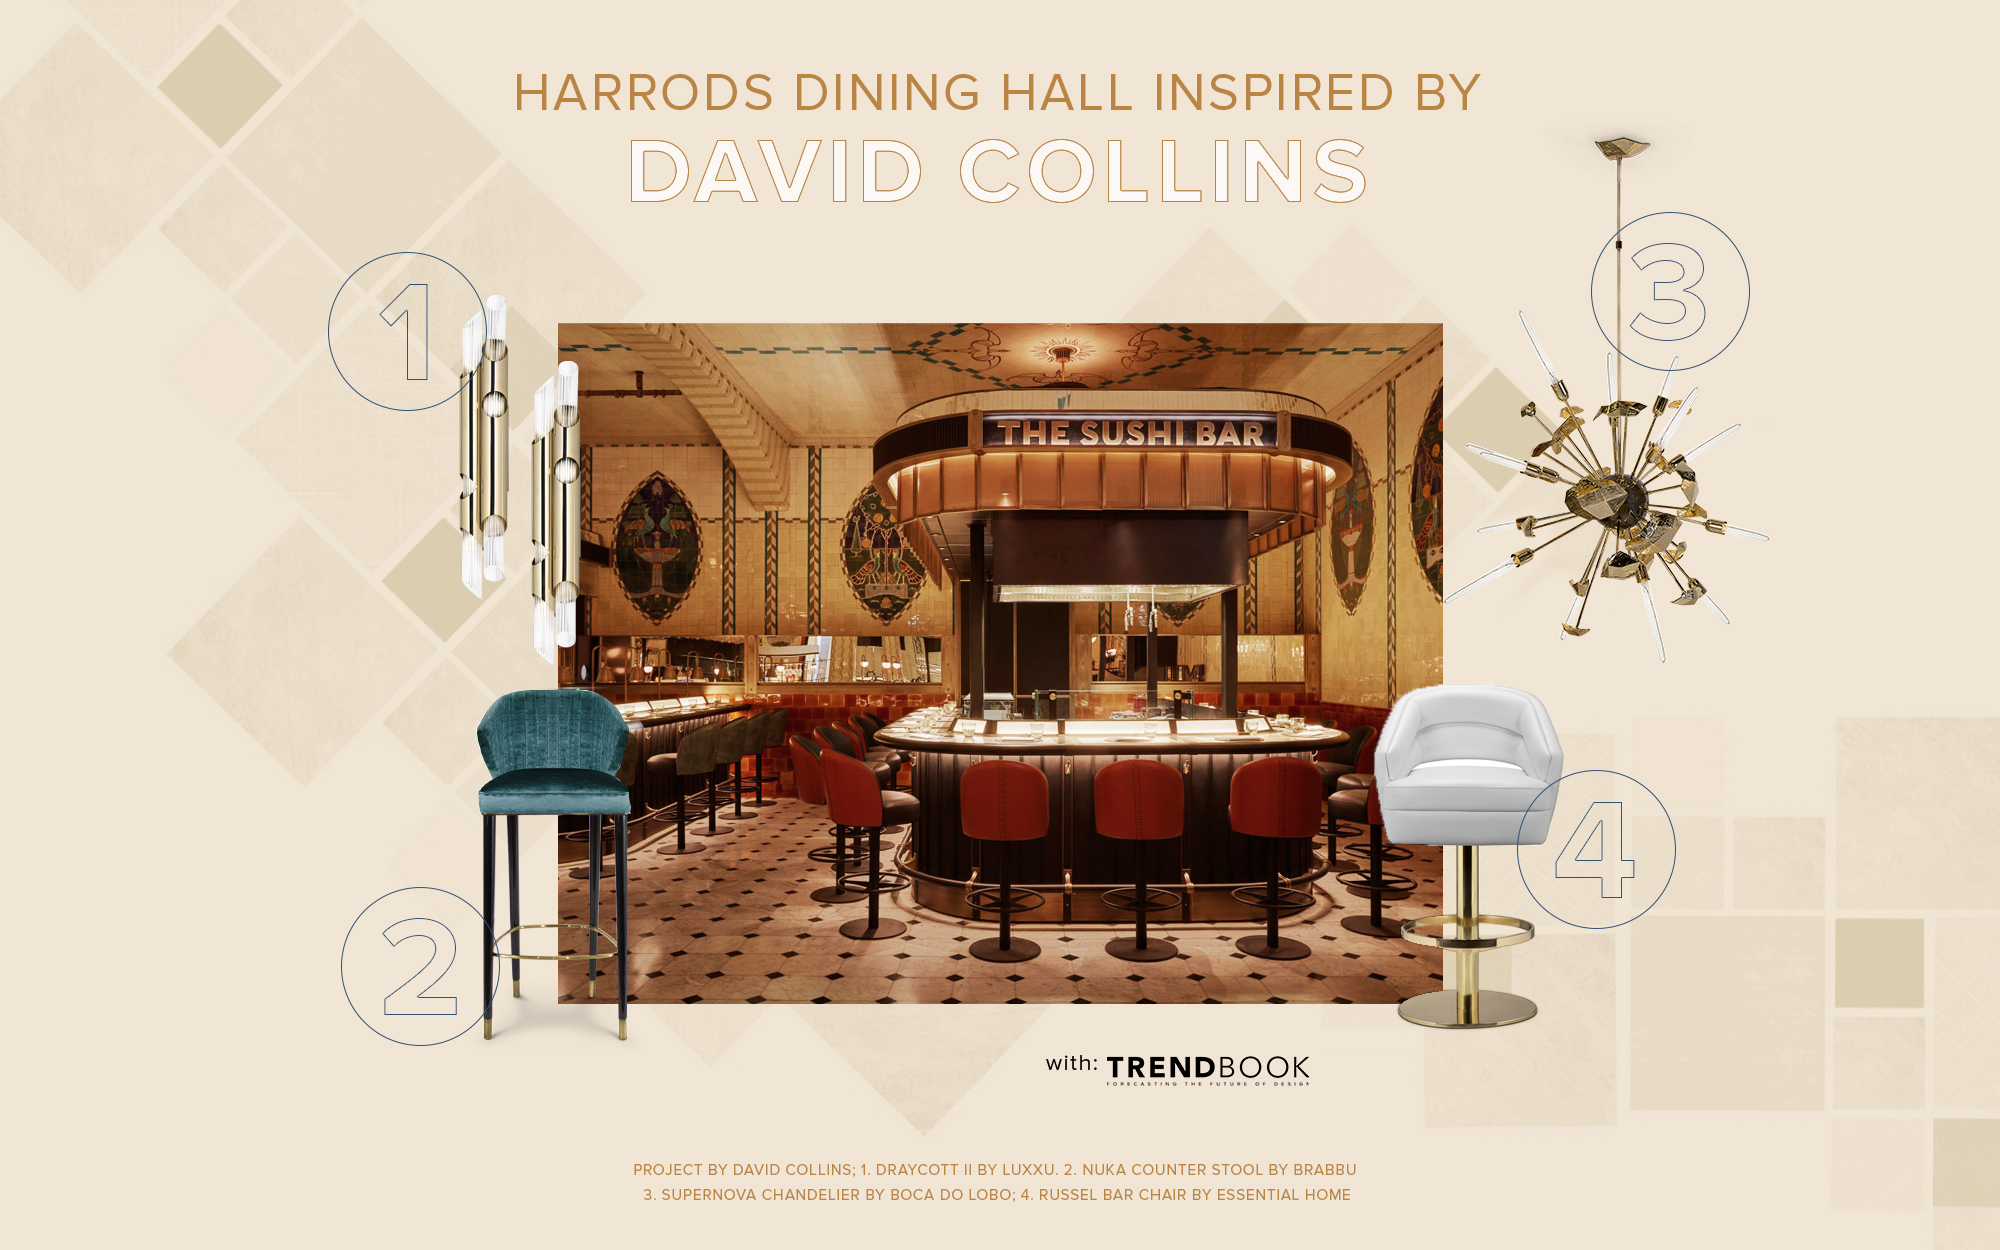 Harrod's Dining Hall: Inspiration from David Collins david collins Harrod's Dining Hall: Inspiration from David Collins DAVID COLLINS